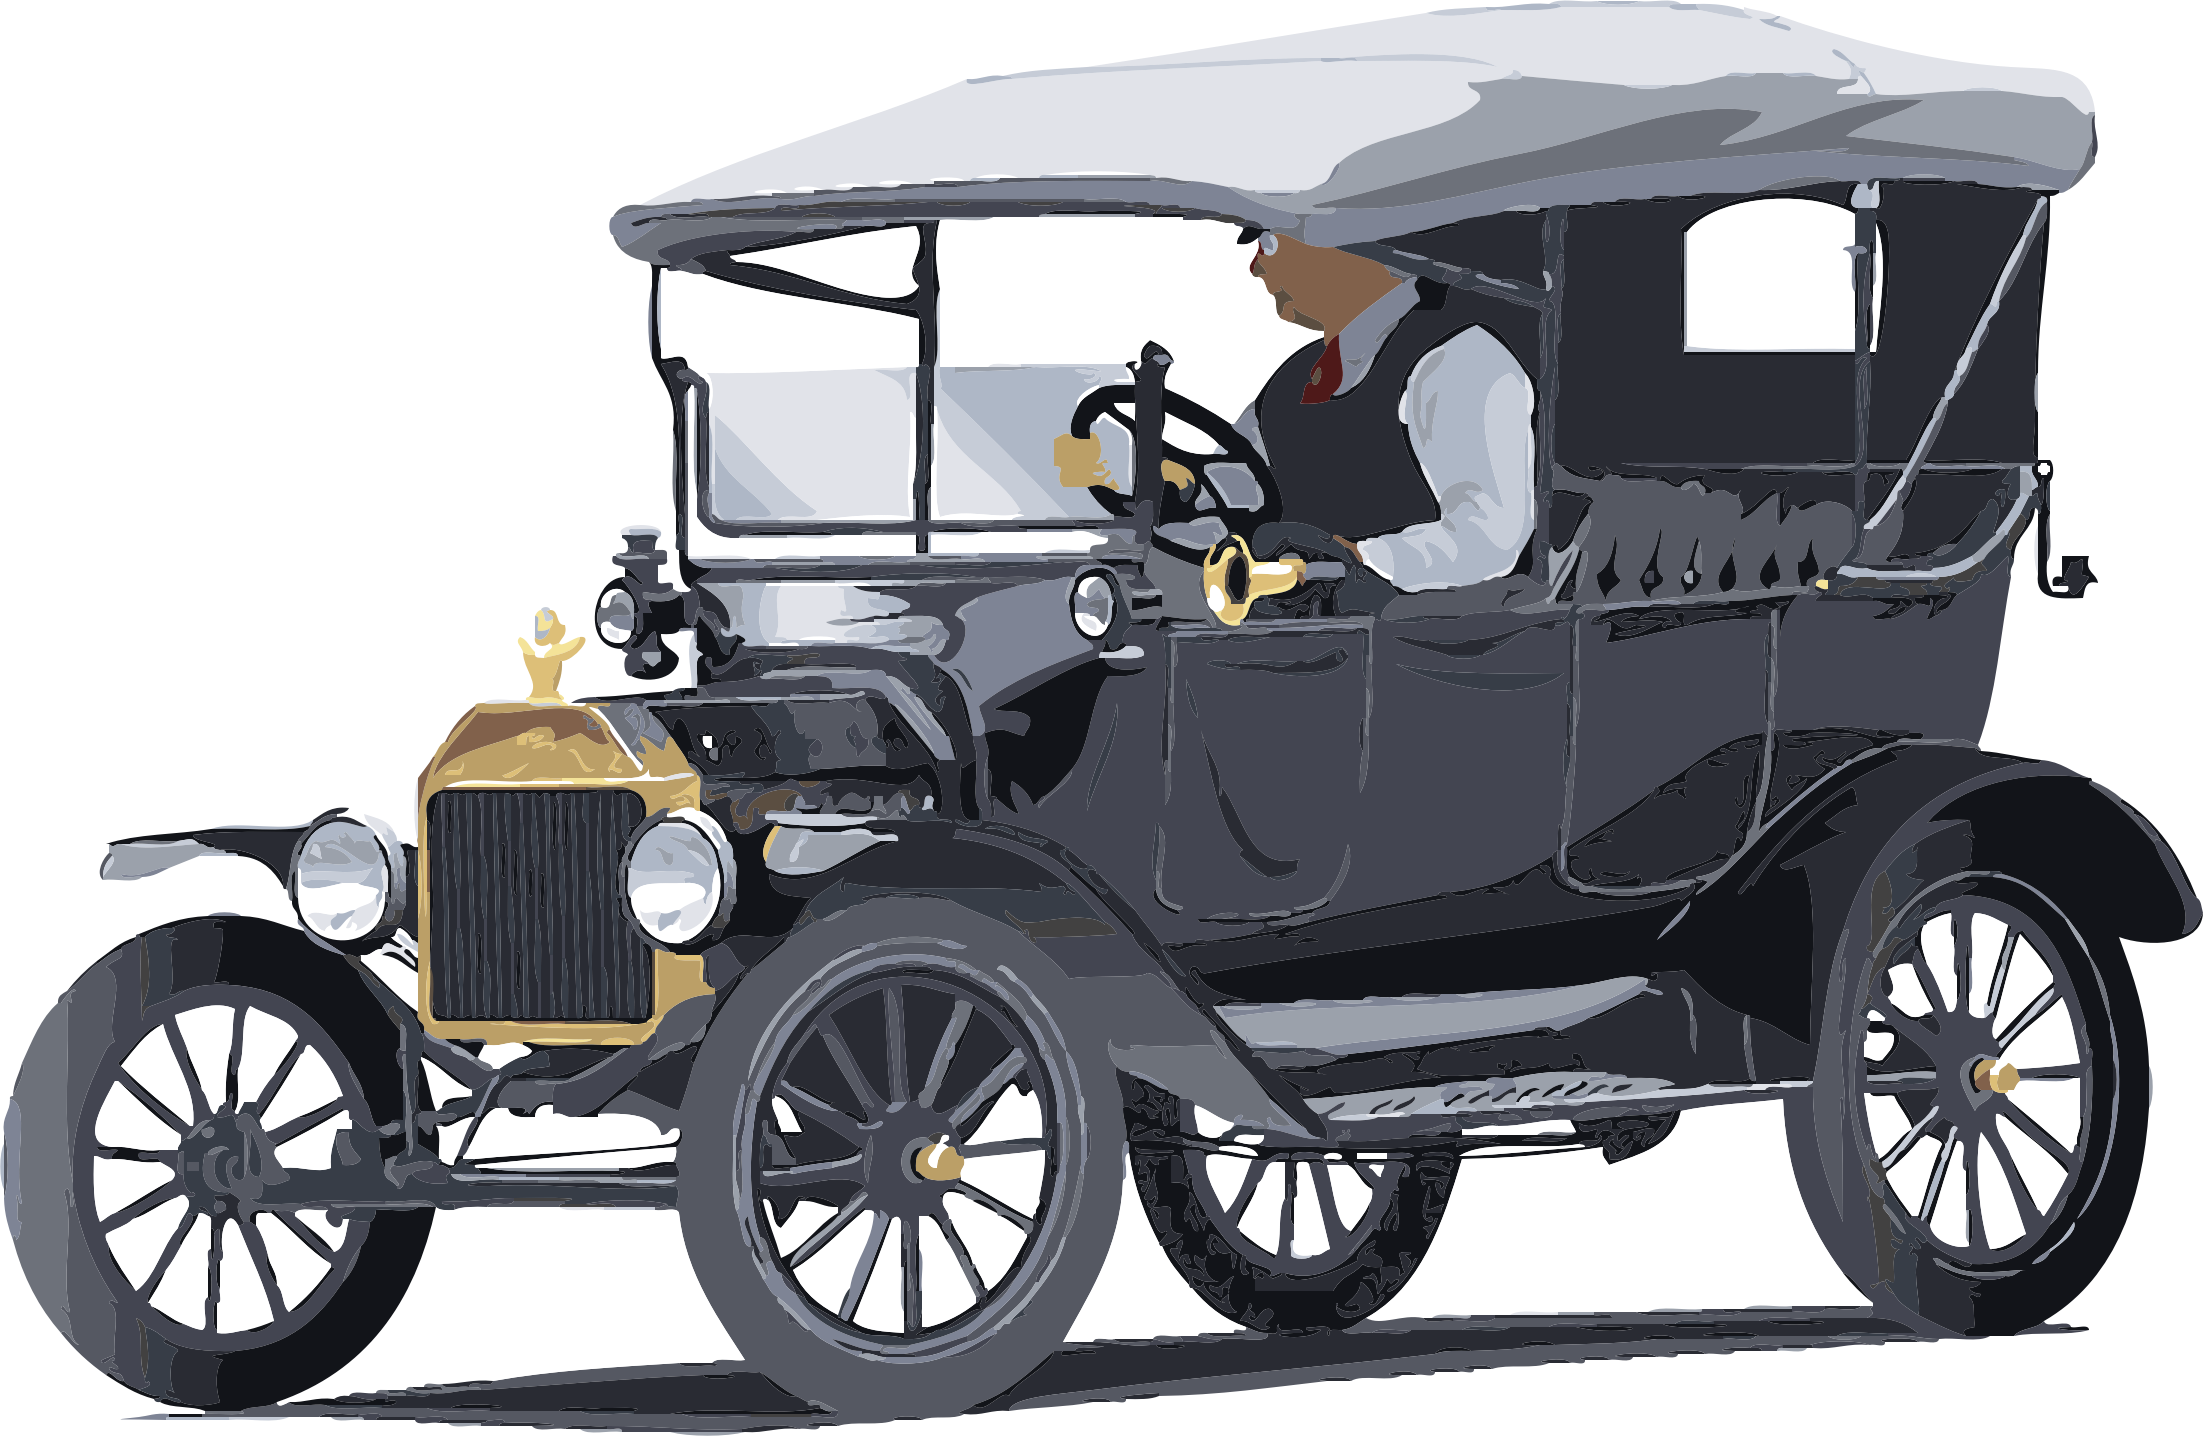 Ford model t clipart 2 » Clipart Station.